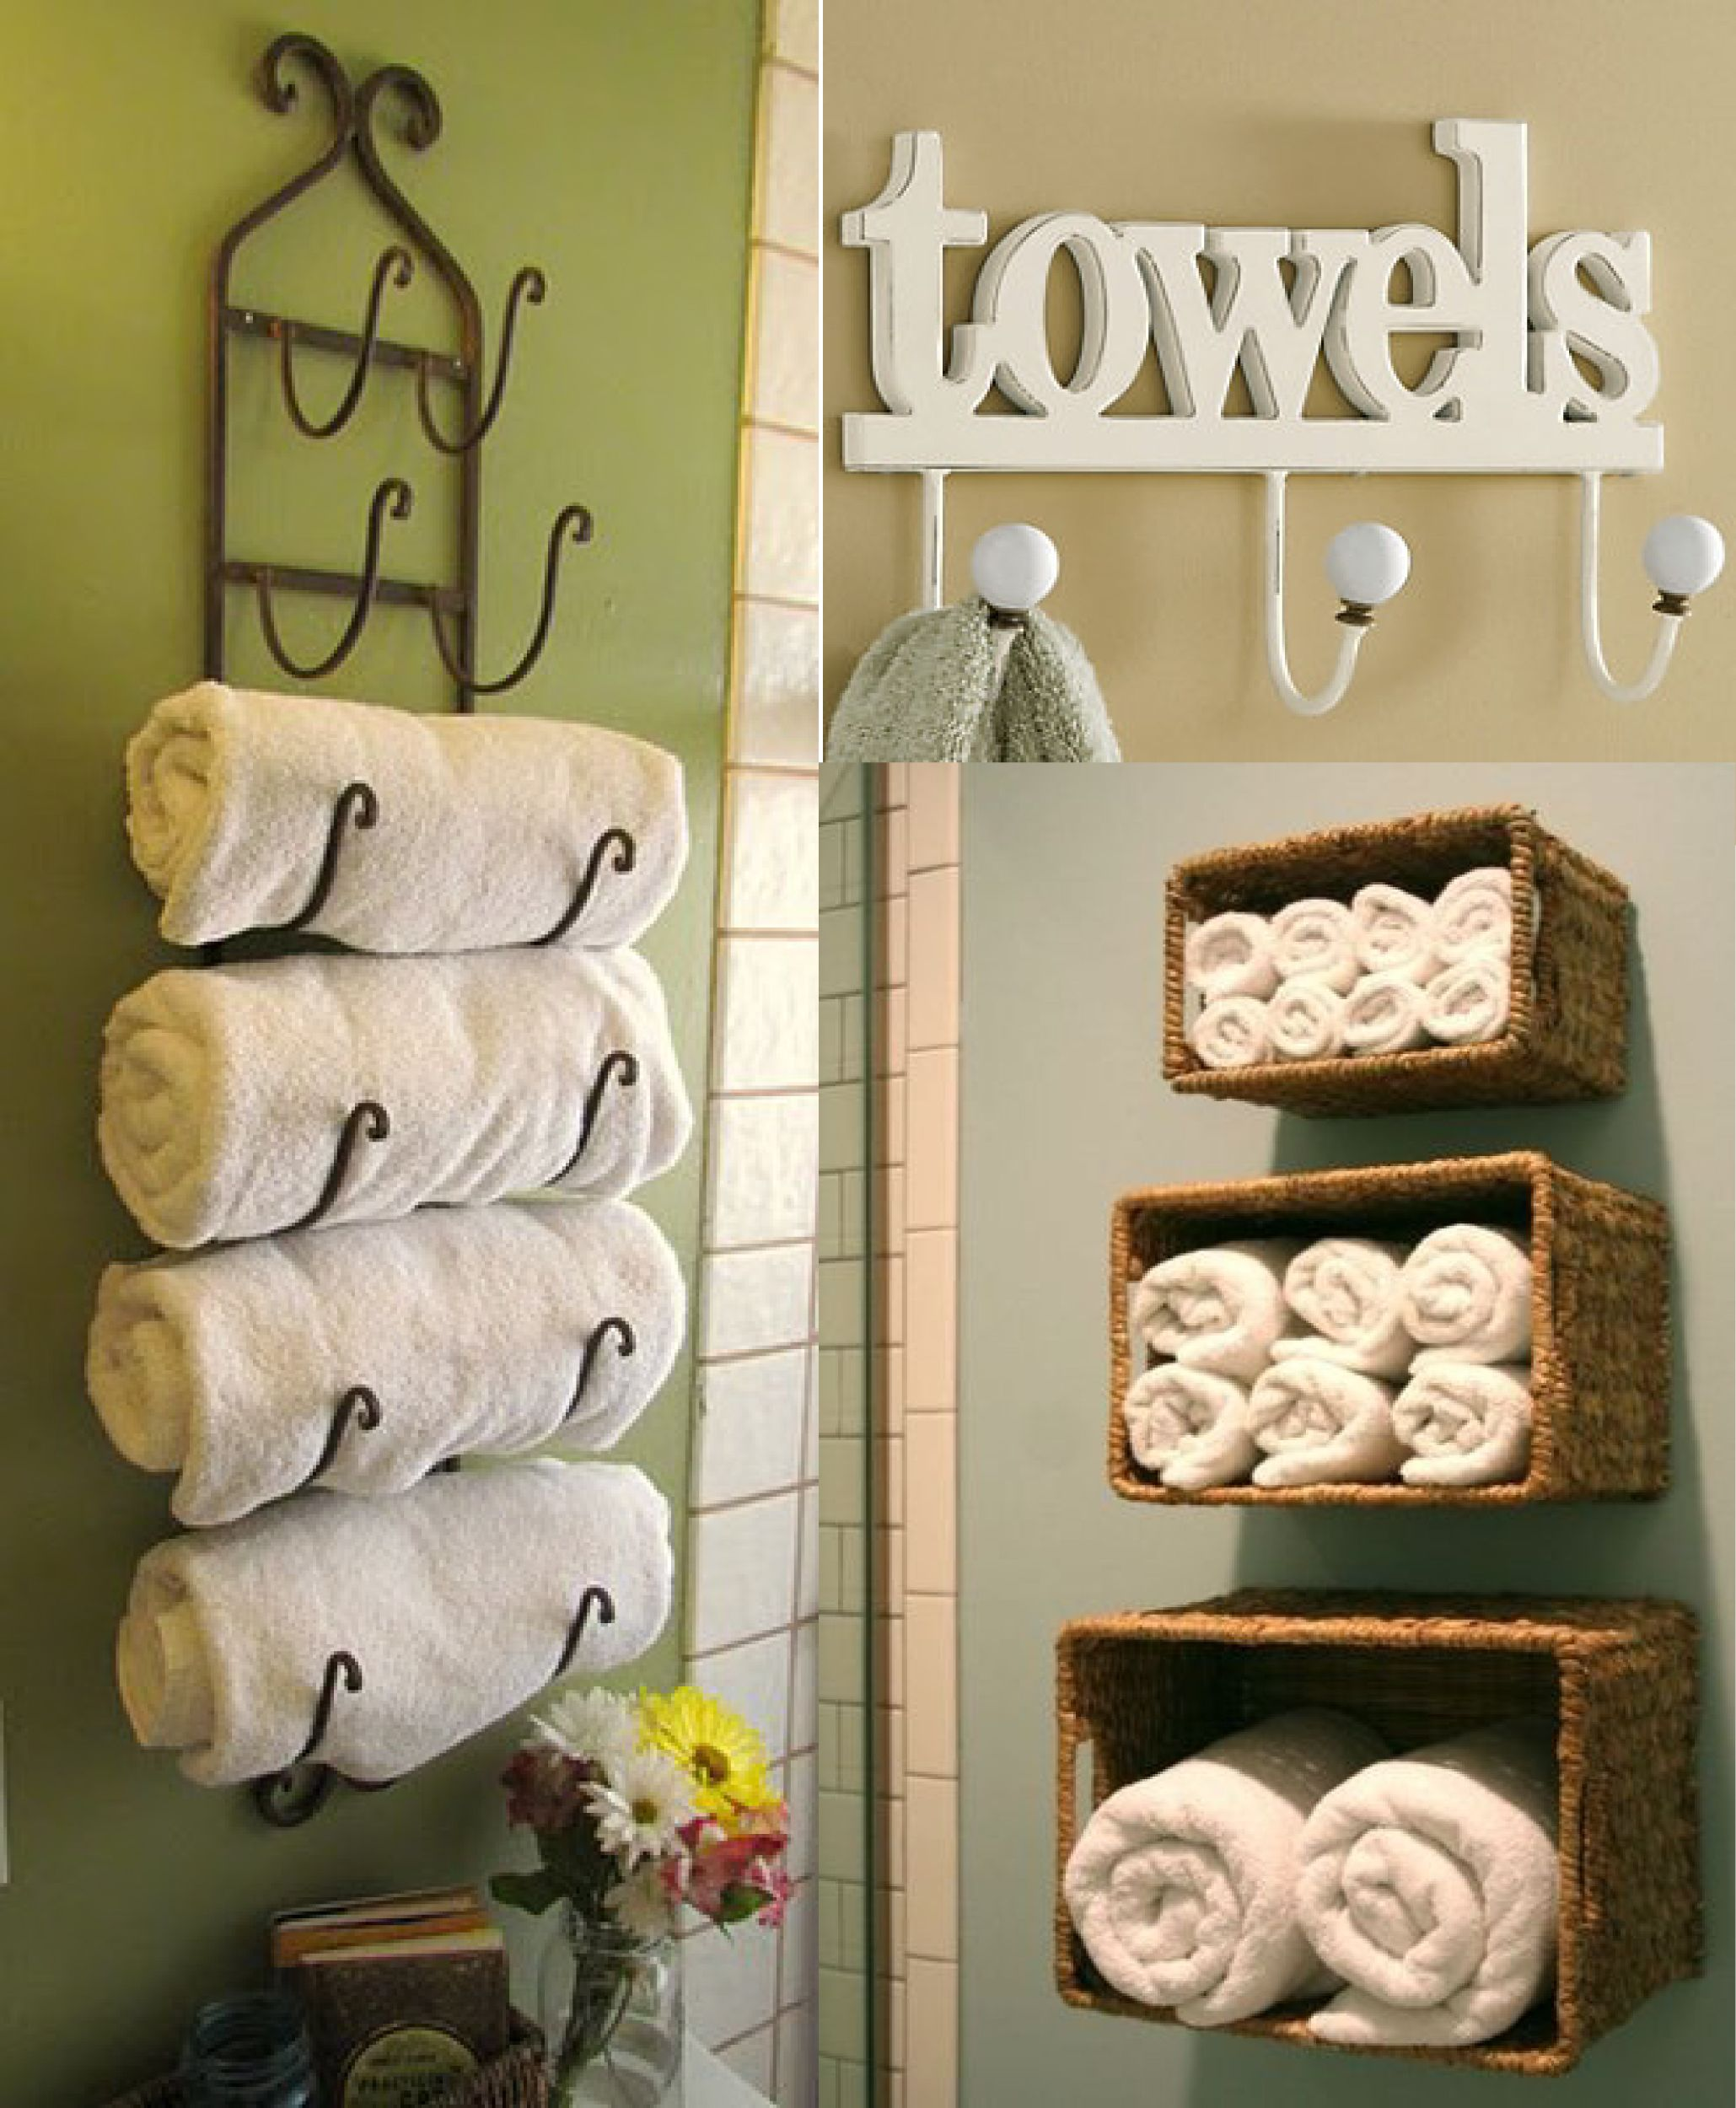 Bathroom Storage Ideas Pinterest By Shannon Rooks Corporate - Discount bath towel sets for small bathroom ideas